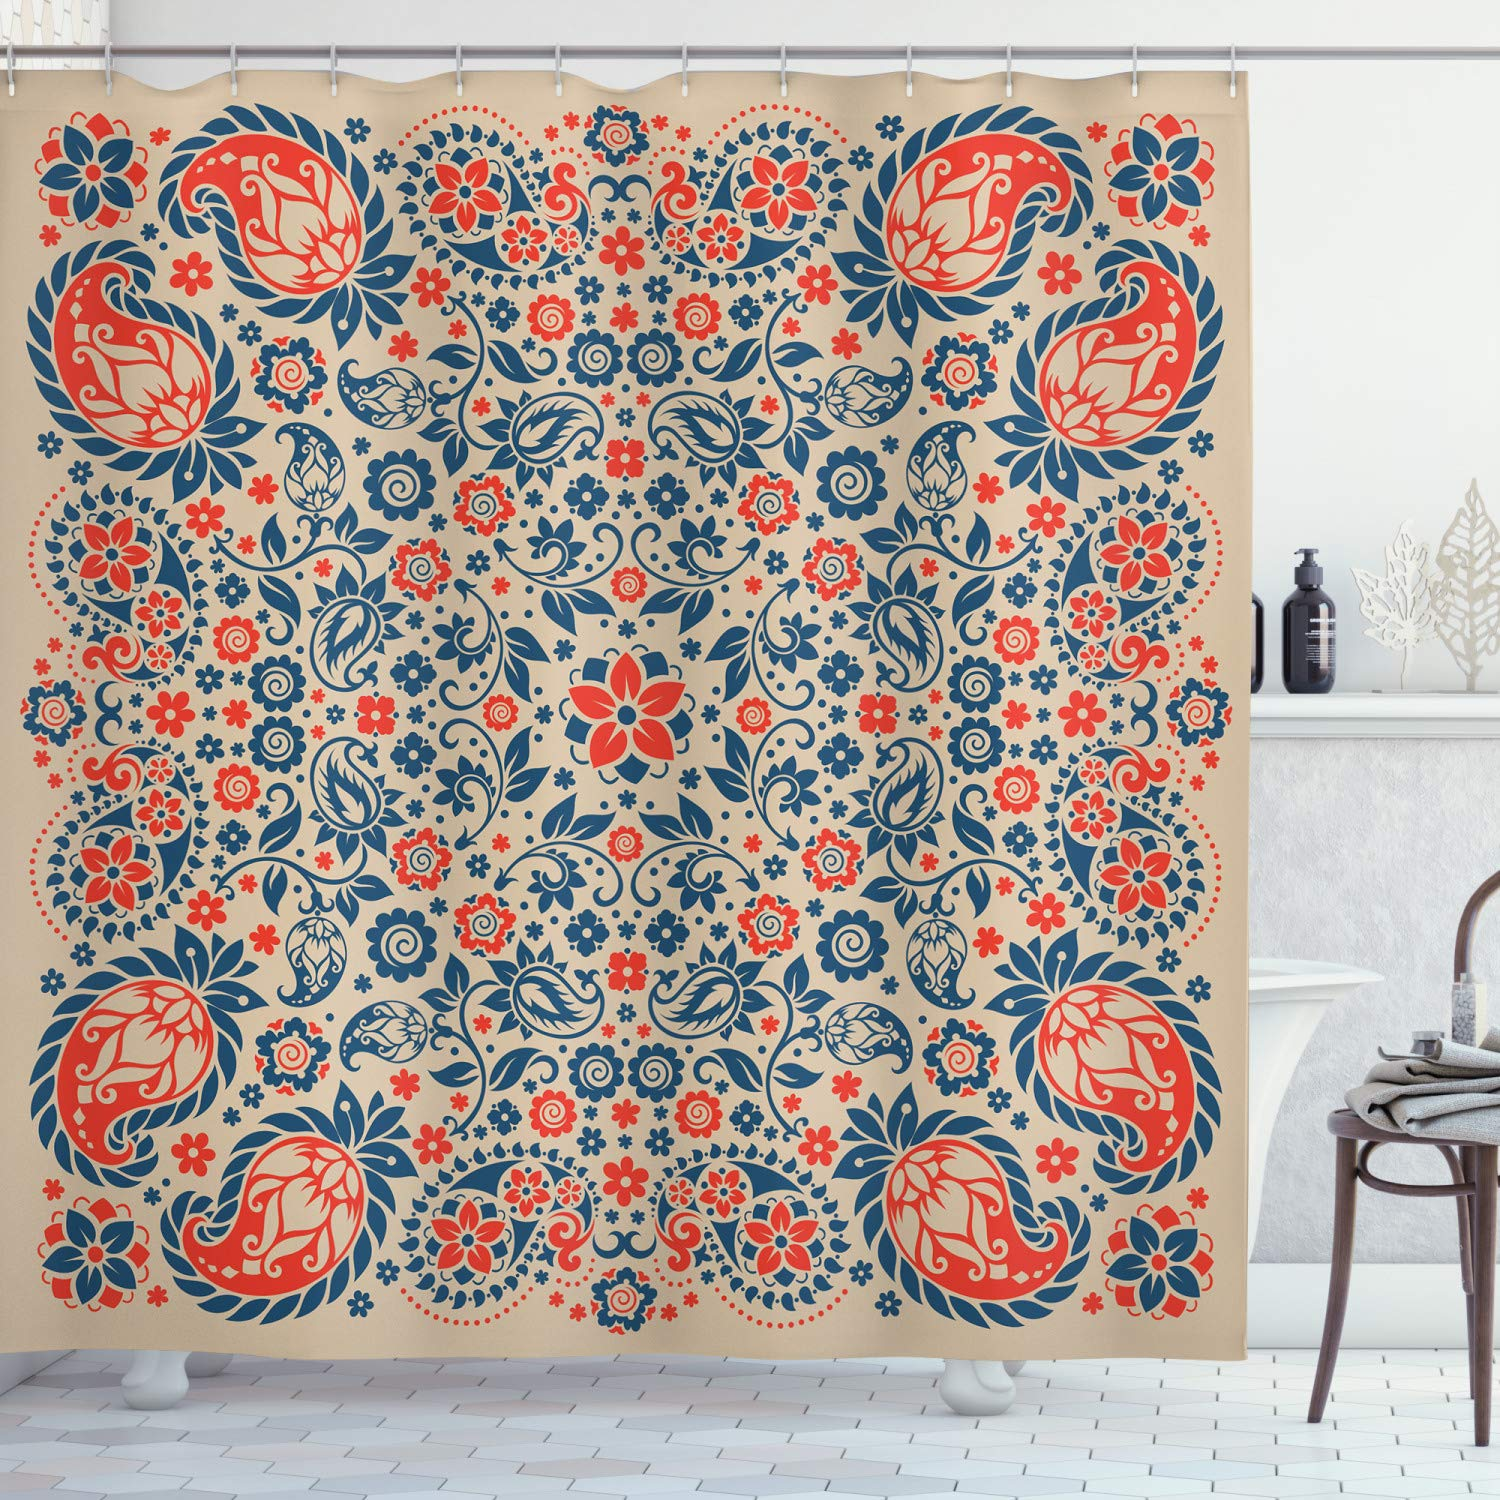 """Ambesonne Paisley Shower Curtain, Floral Ornate Pattern Cultural Folk Persian Middle Eastern, Cloth Fabric Bathroom Decor Set with Hooks, 75"""" Long, Night Blue"""